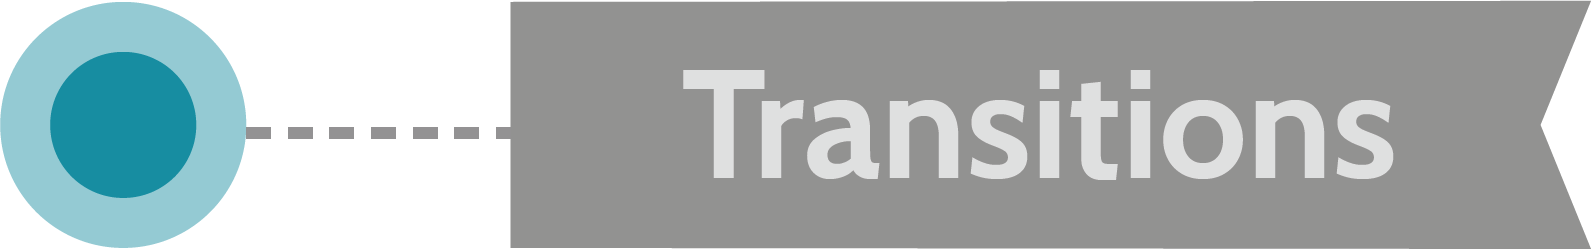 Transitions-Tag.png